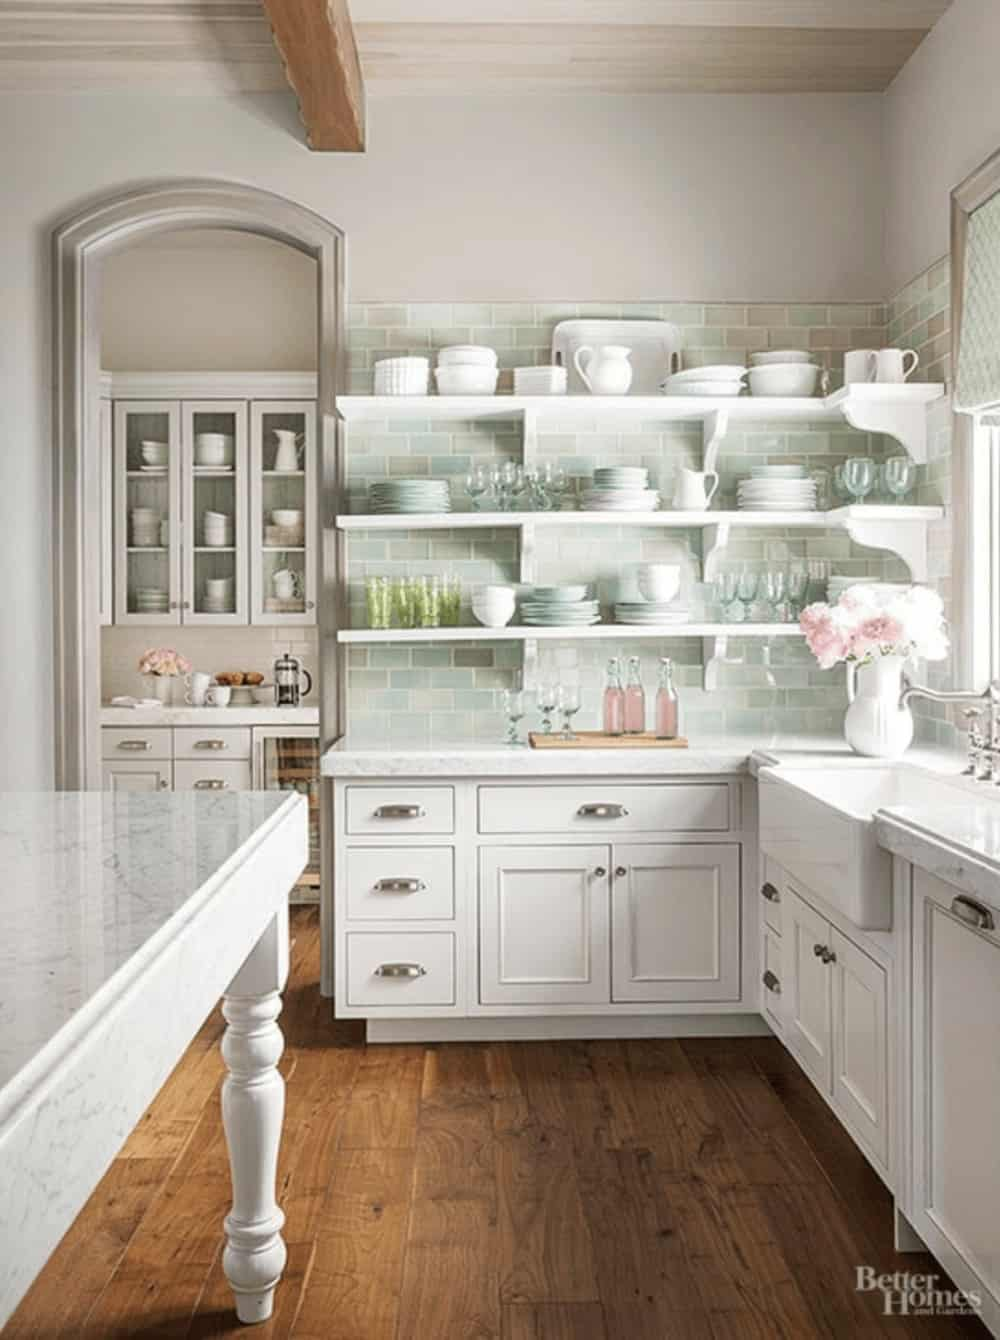 Kichen Shelves and Cabinets